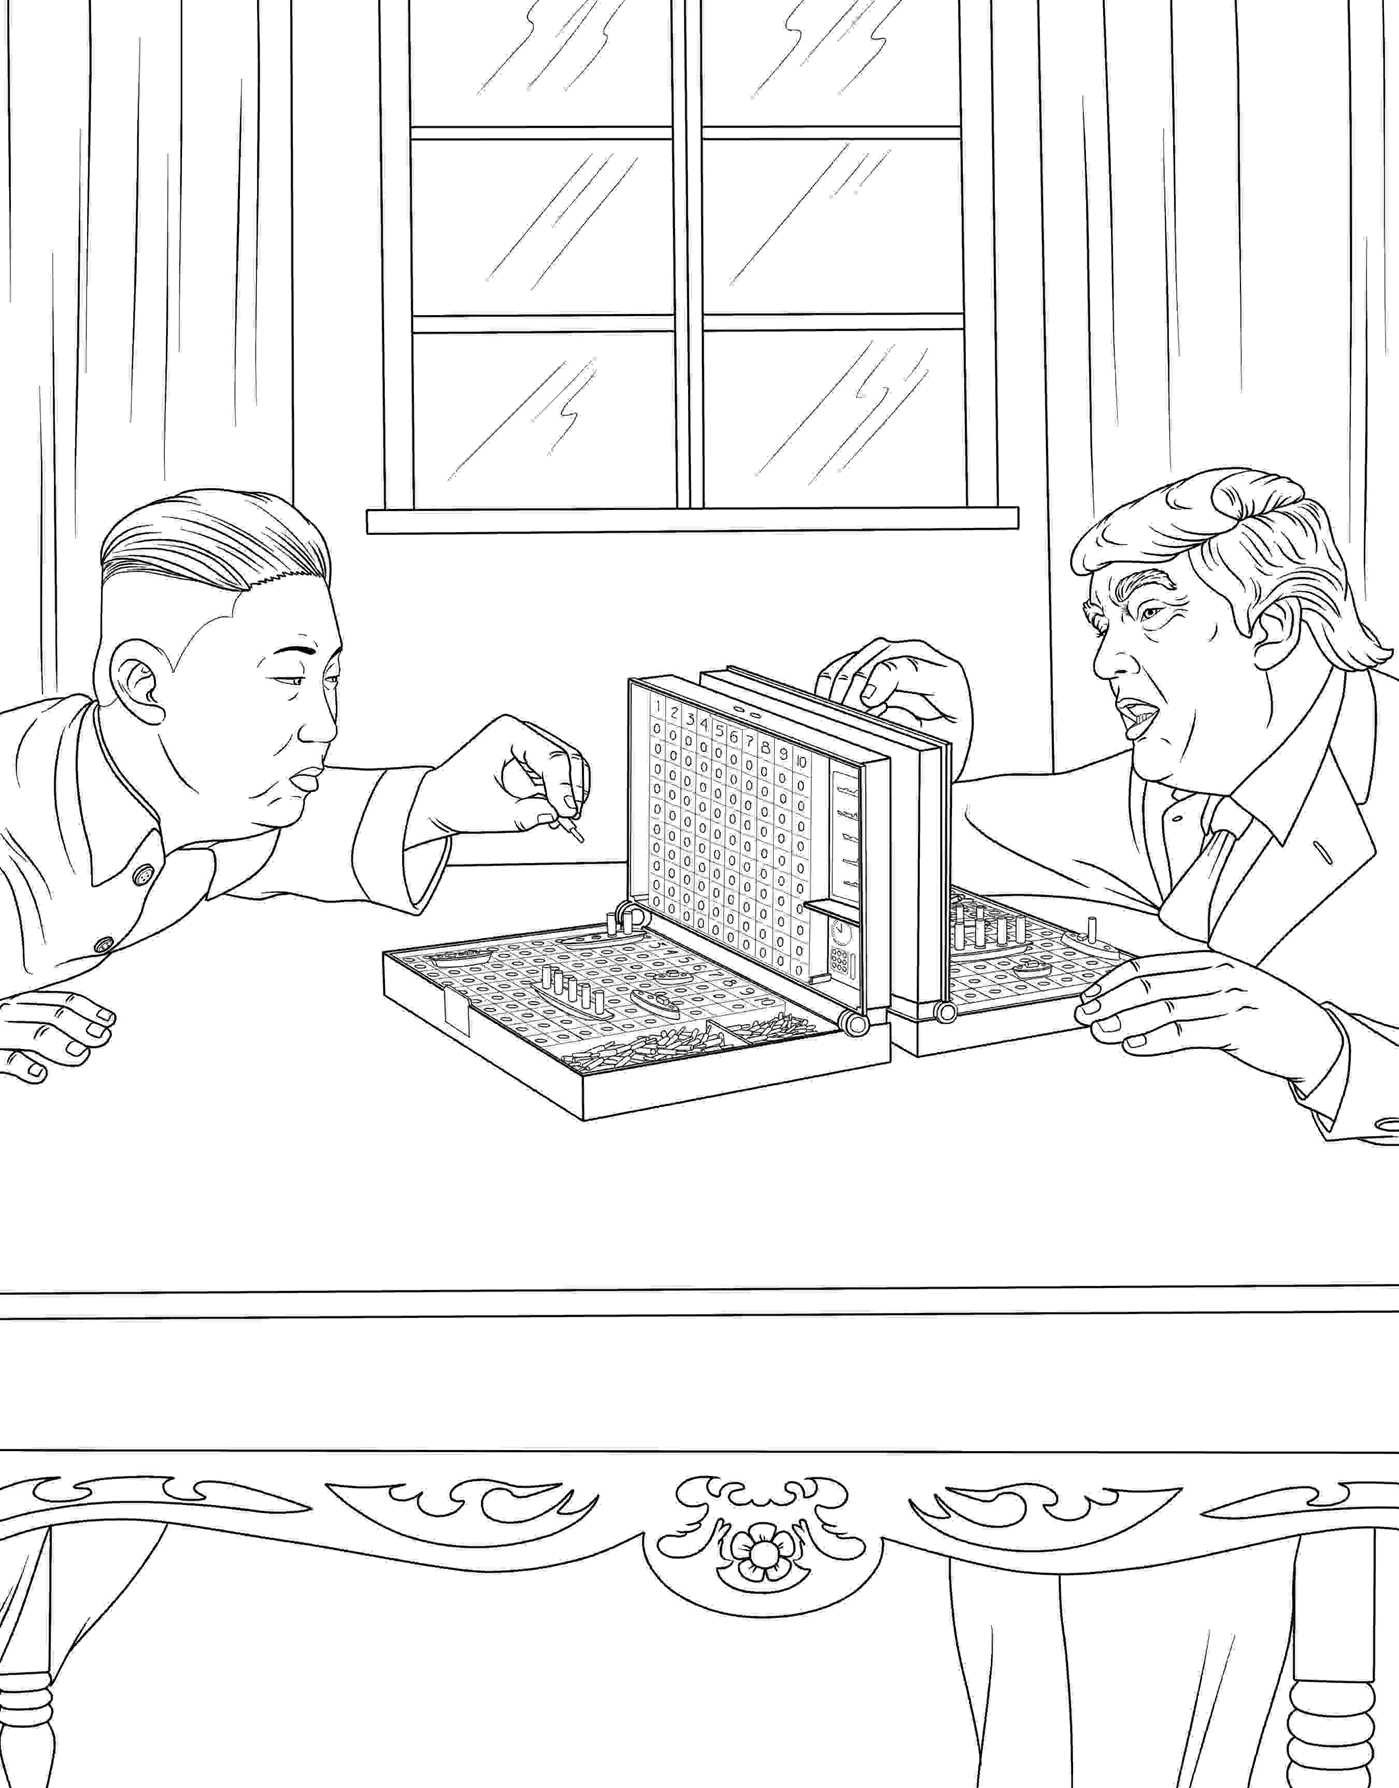 The Trump Coloring Book 9781682610282in01